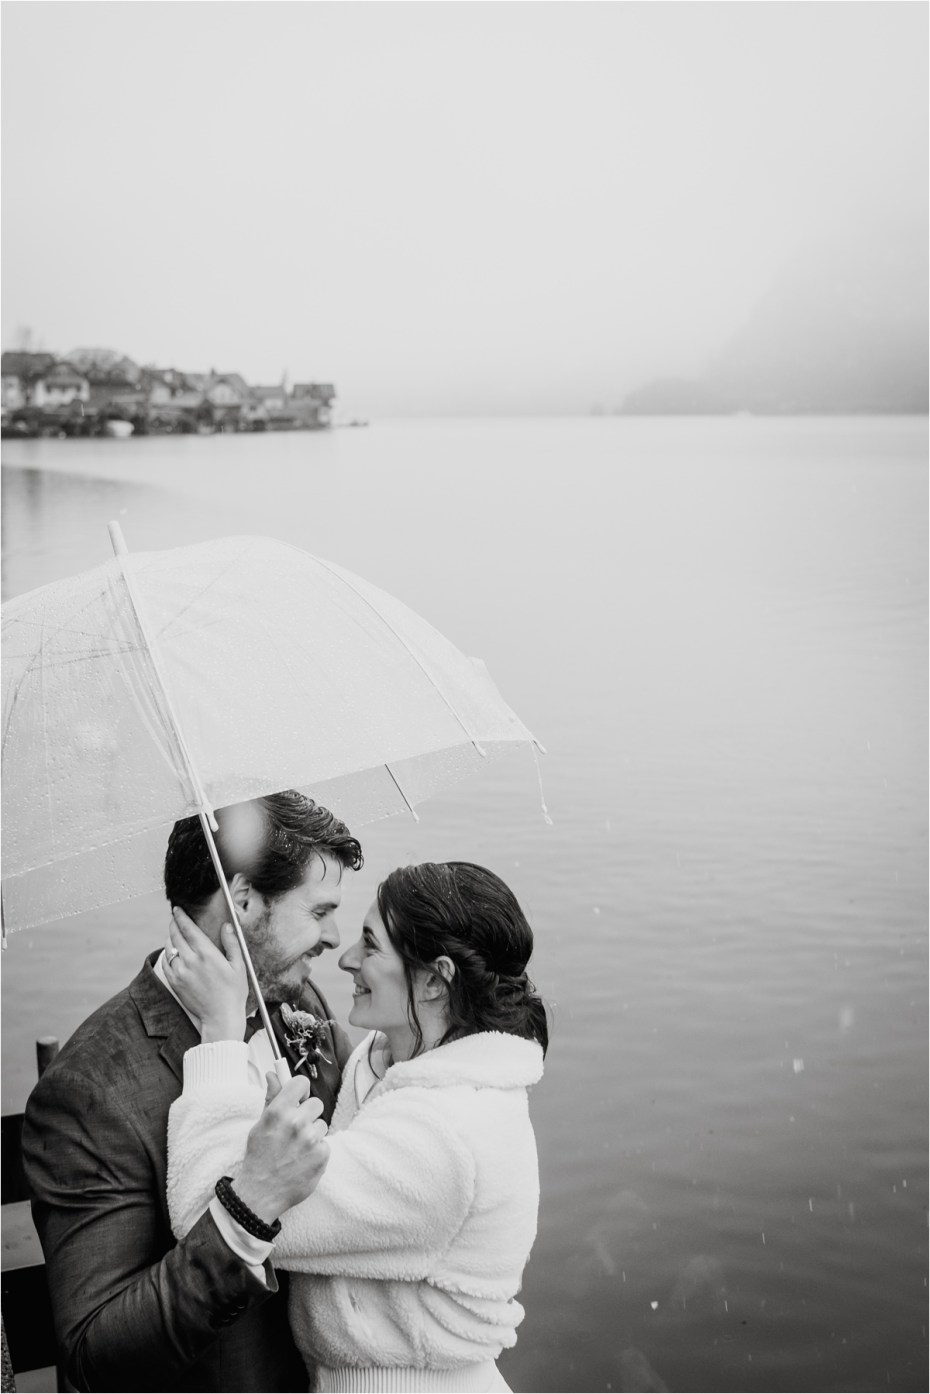 Bride and groom shelter under an umbrella in the rain. Photos by Wild Connections Photography